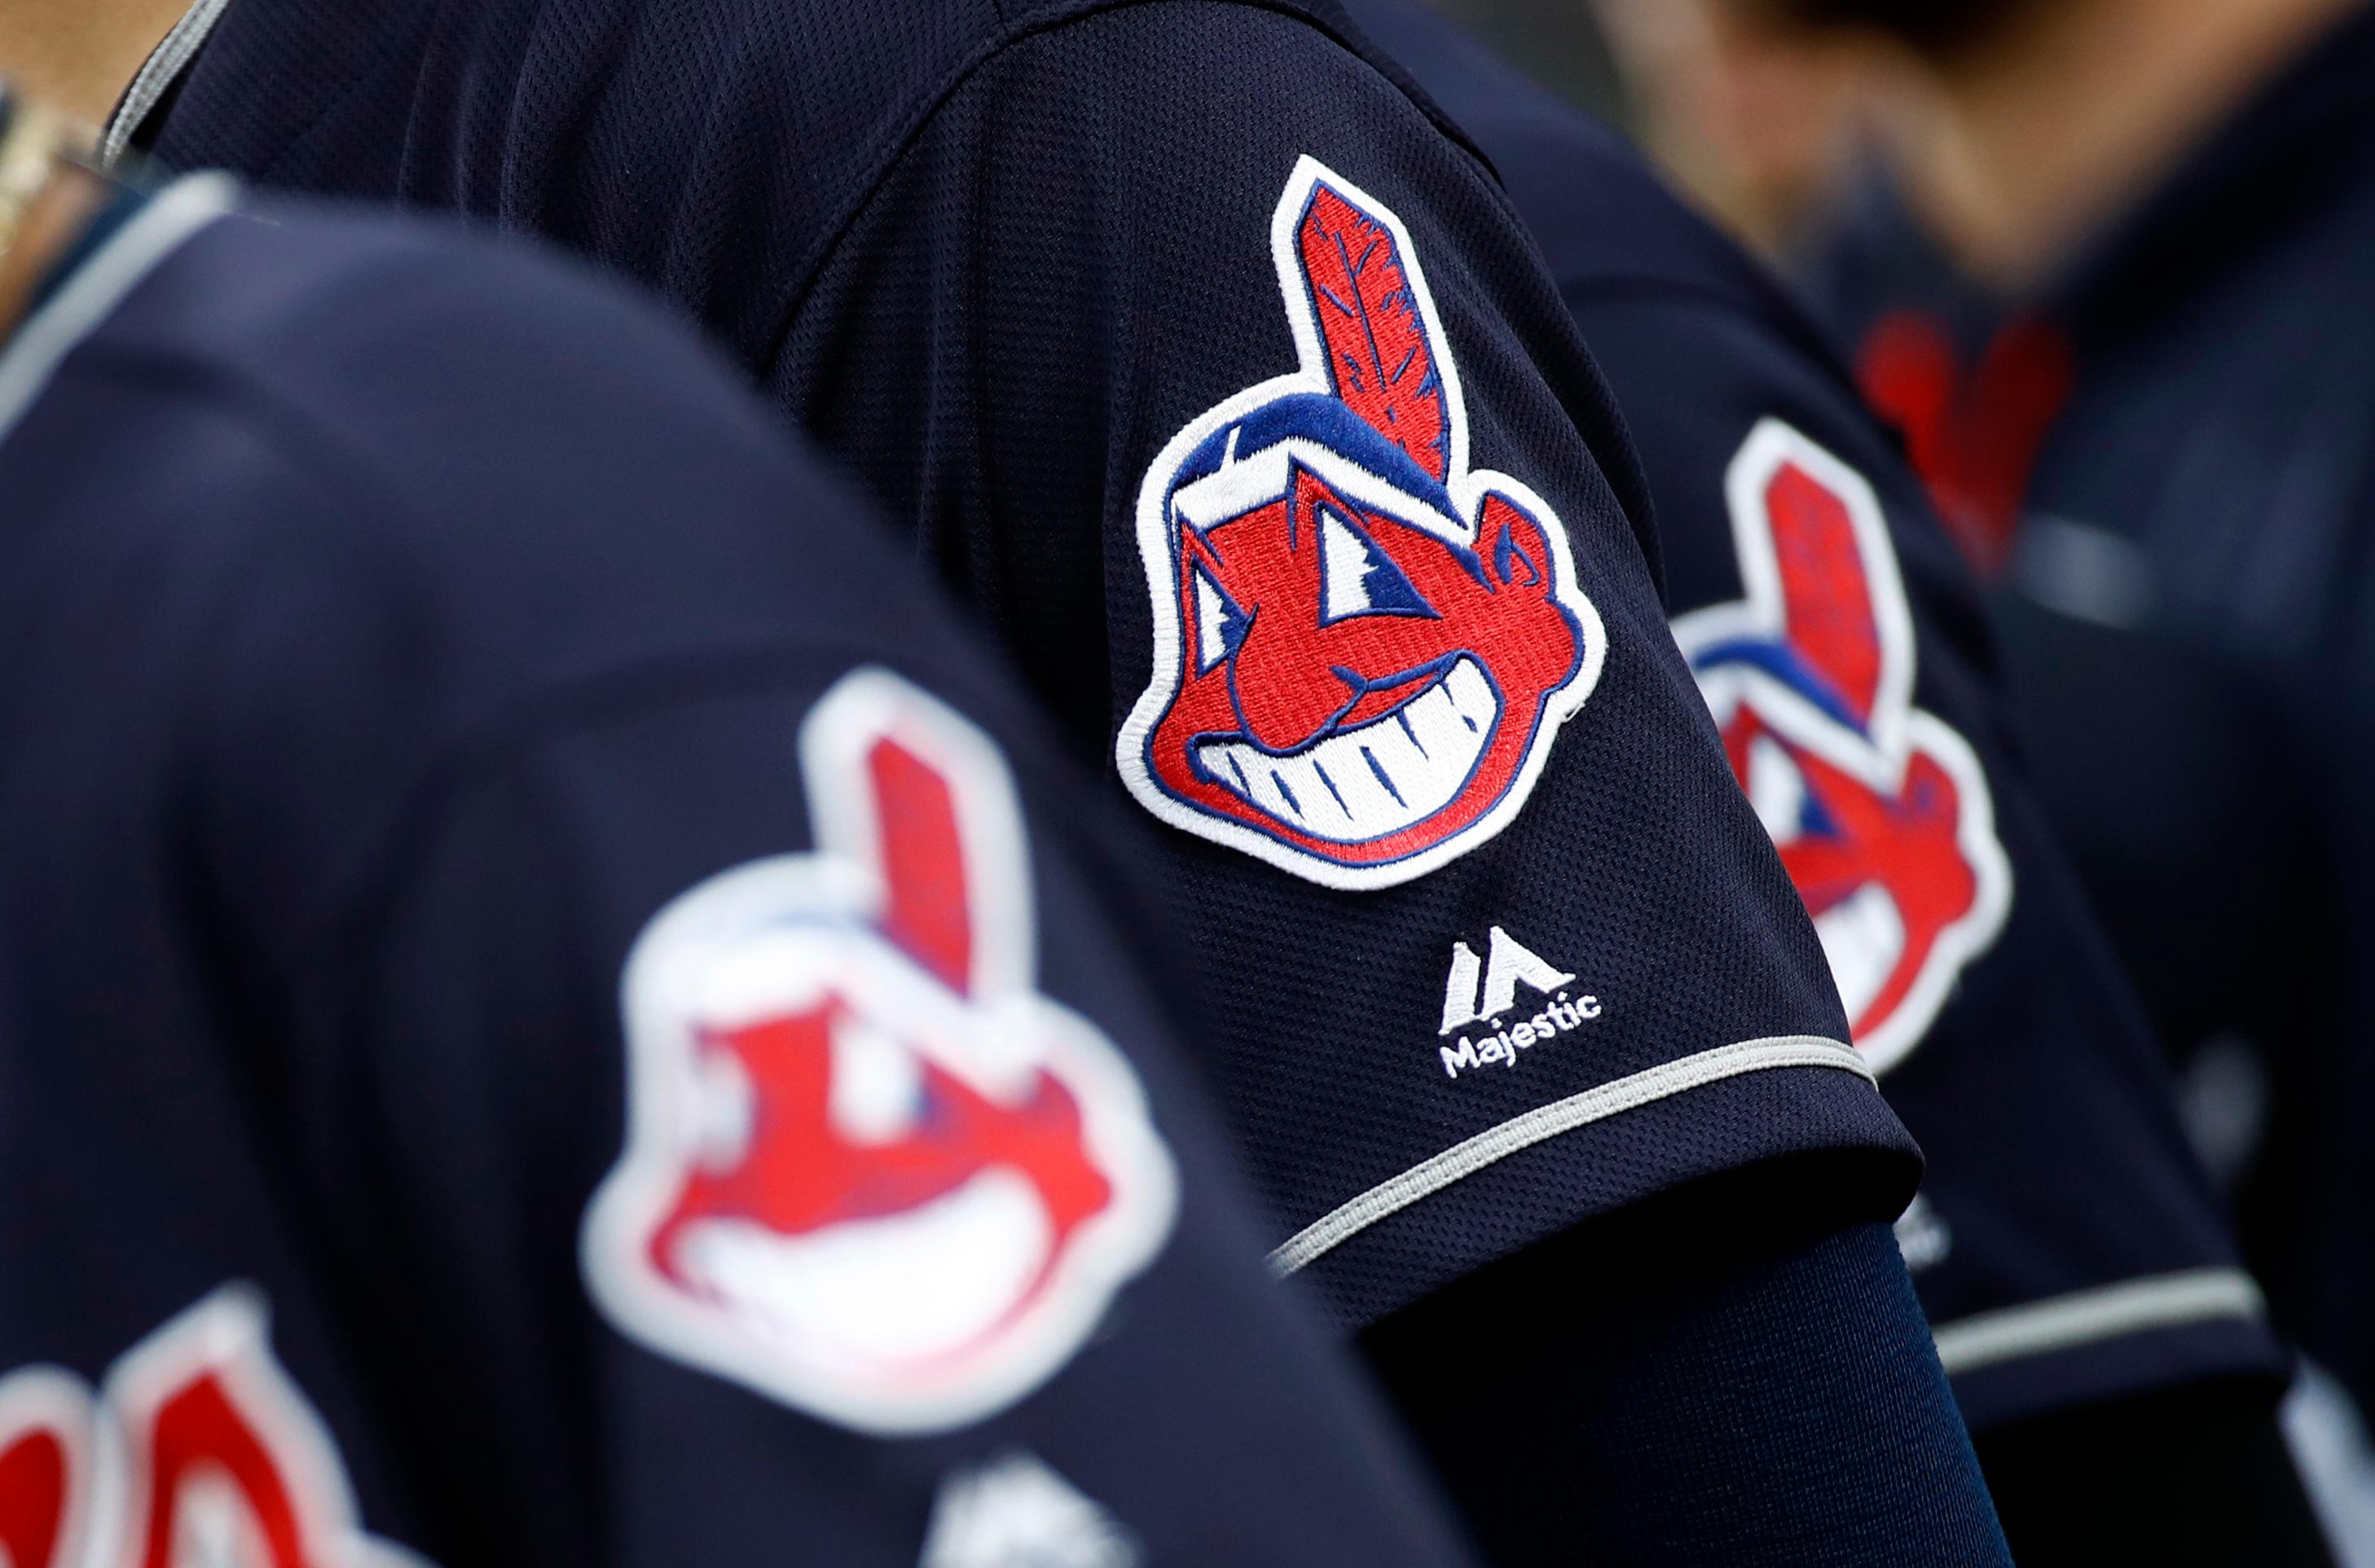 FILE -- In this June 19, 2017, file photo, members of the Cleveland Indians wear uniforms featuring mascot Chief Wahoo as they stand on the field for the national anthem before a baseball game against the Baltimore Orioles in Baltimore. (AP Photo/Patrick Semansky, File)